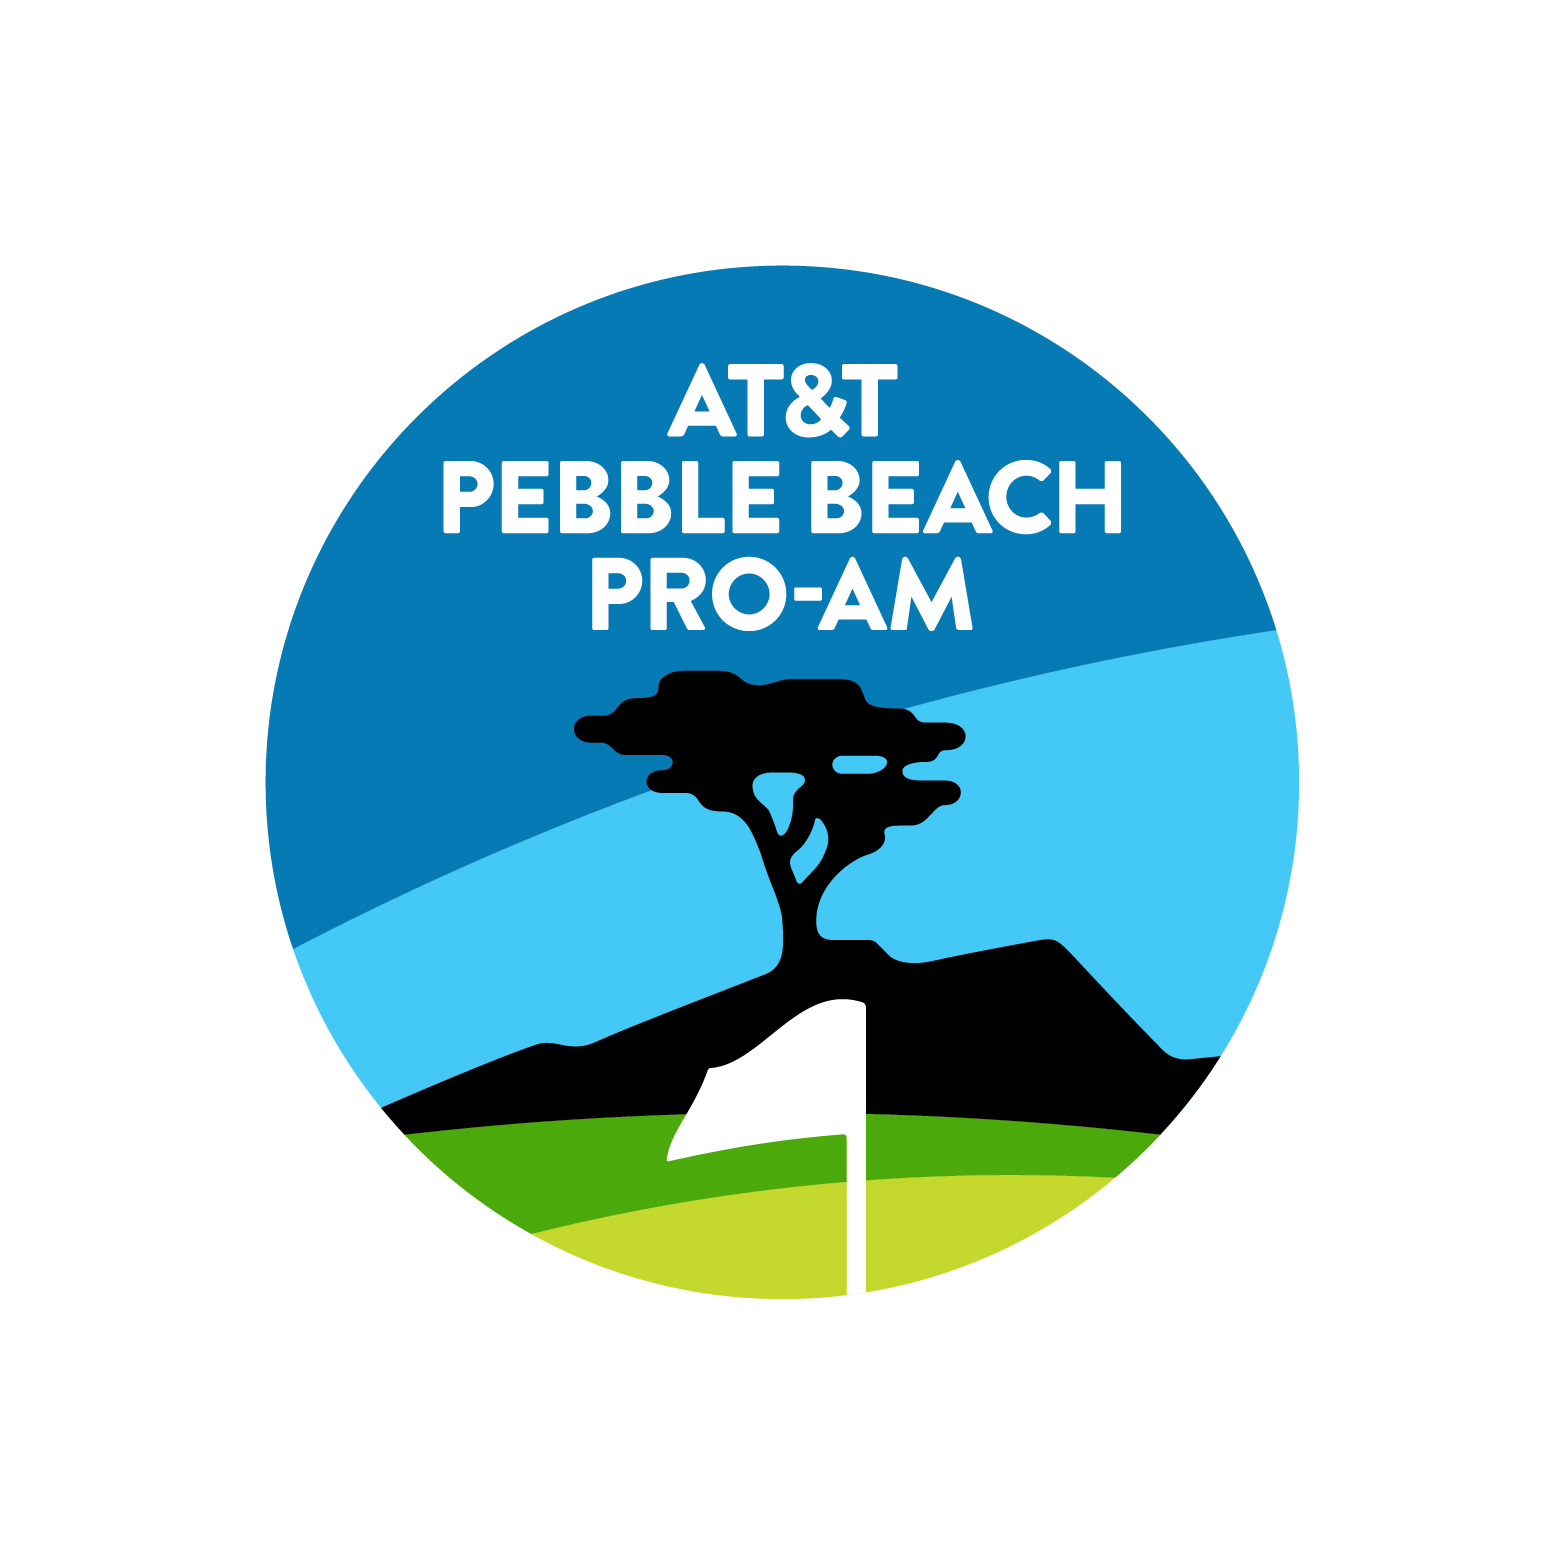 AT&T Pebble Beach Pro-Am Tournament 2017